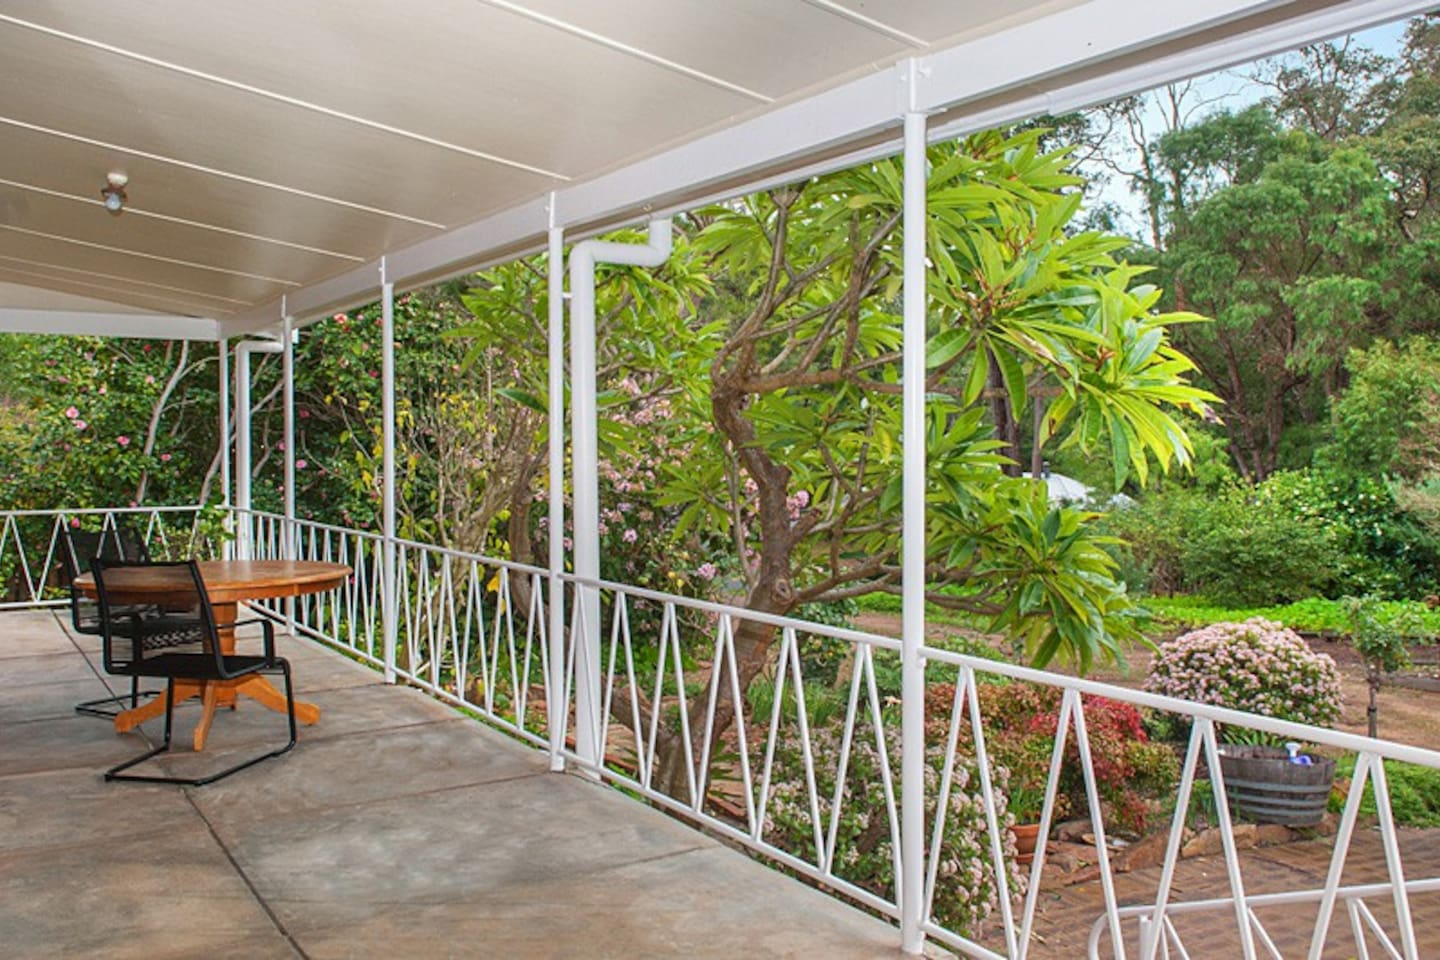 Take in the forest views from the North facing verandah